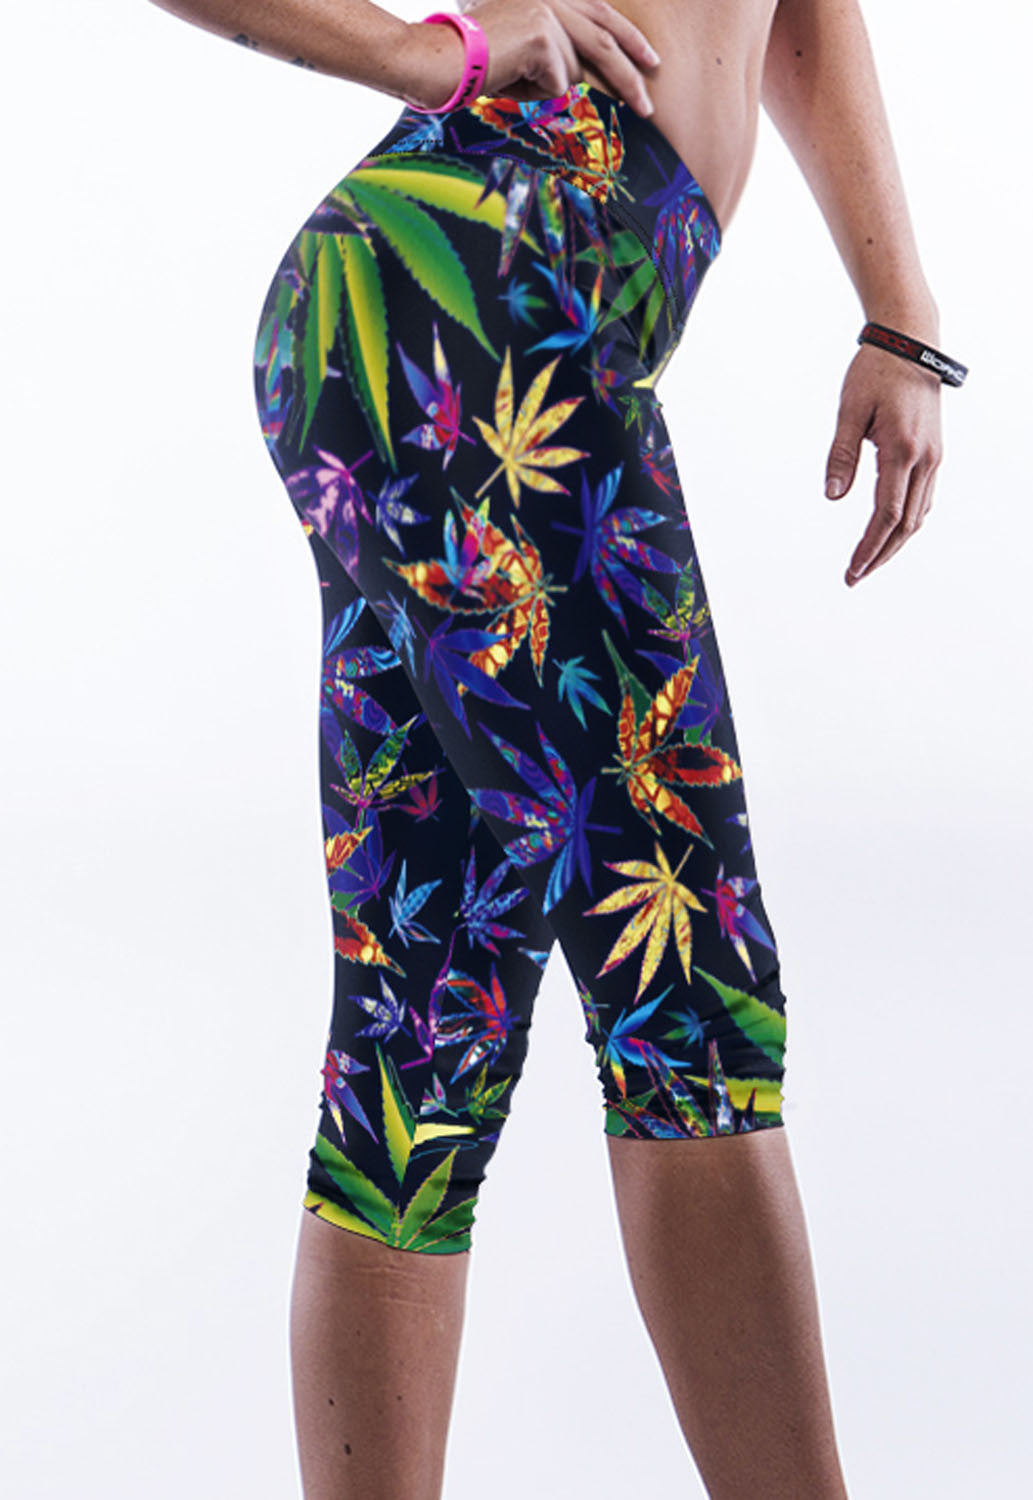 Vibrant Leaves Yoga Pants - Jahnell's Closet